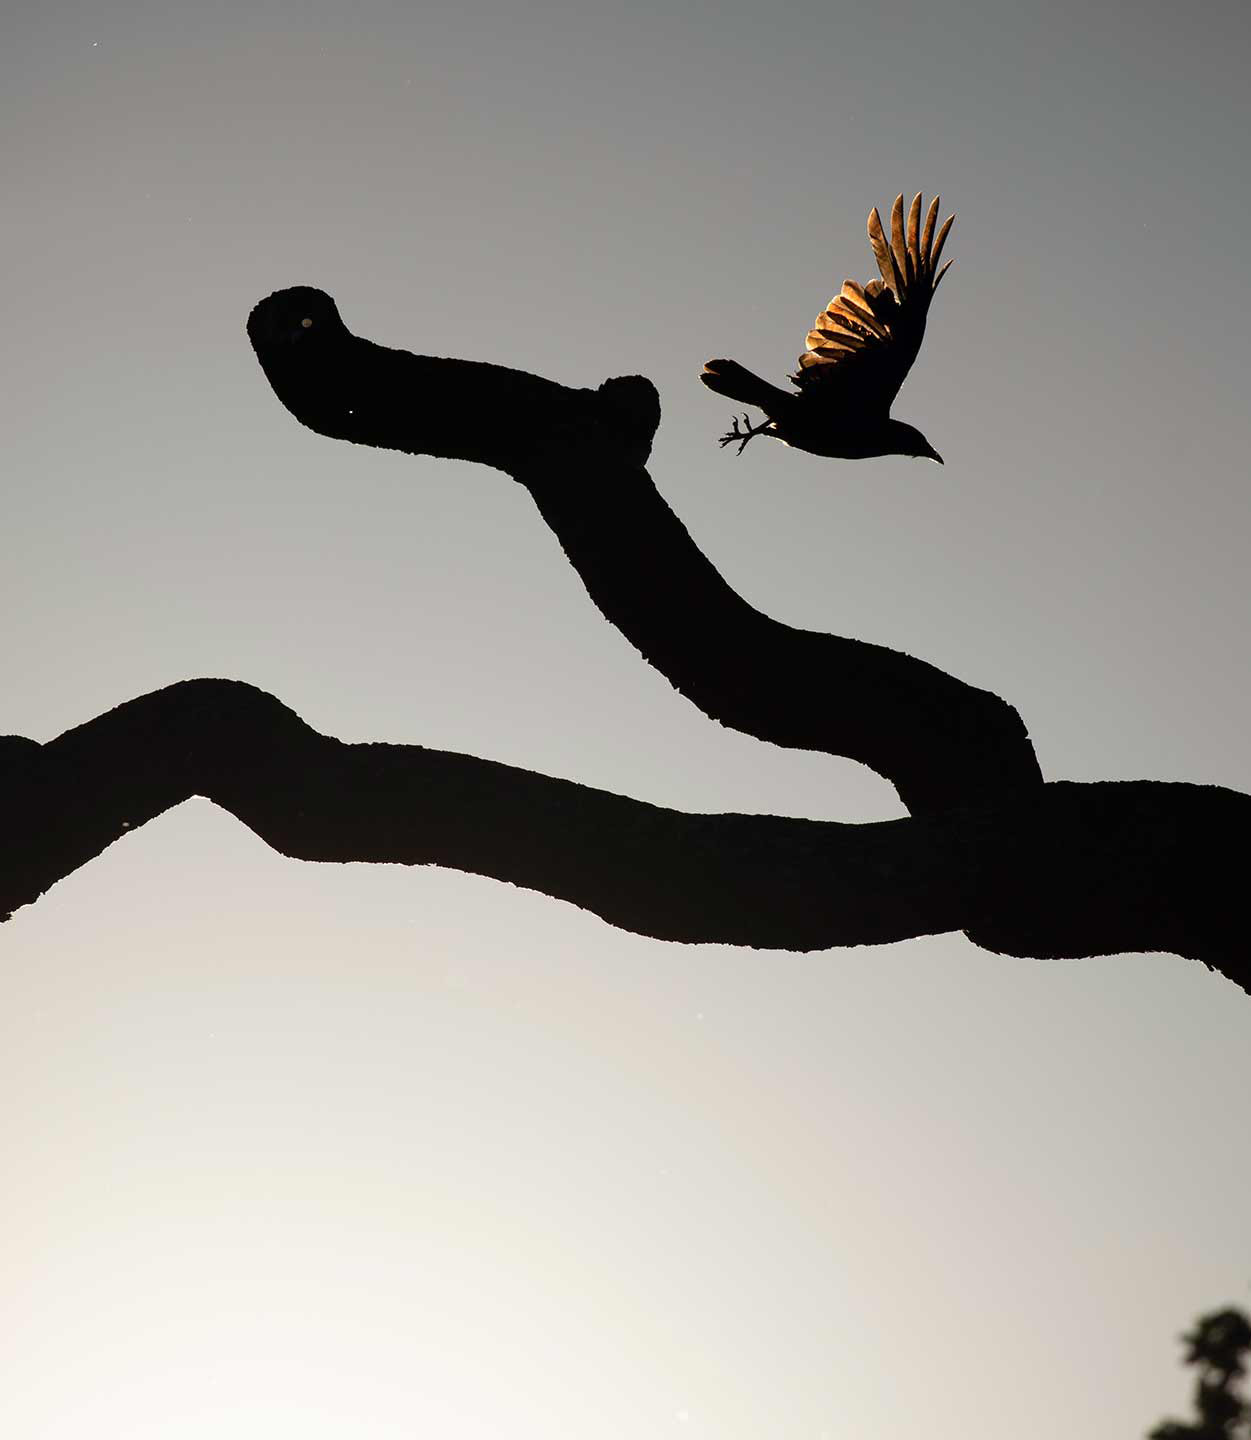 Take Flight (1 of 5), © Gideon Knight, Portfolio Category Winner, RSPCA Young Photographer Awards